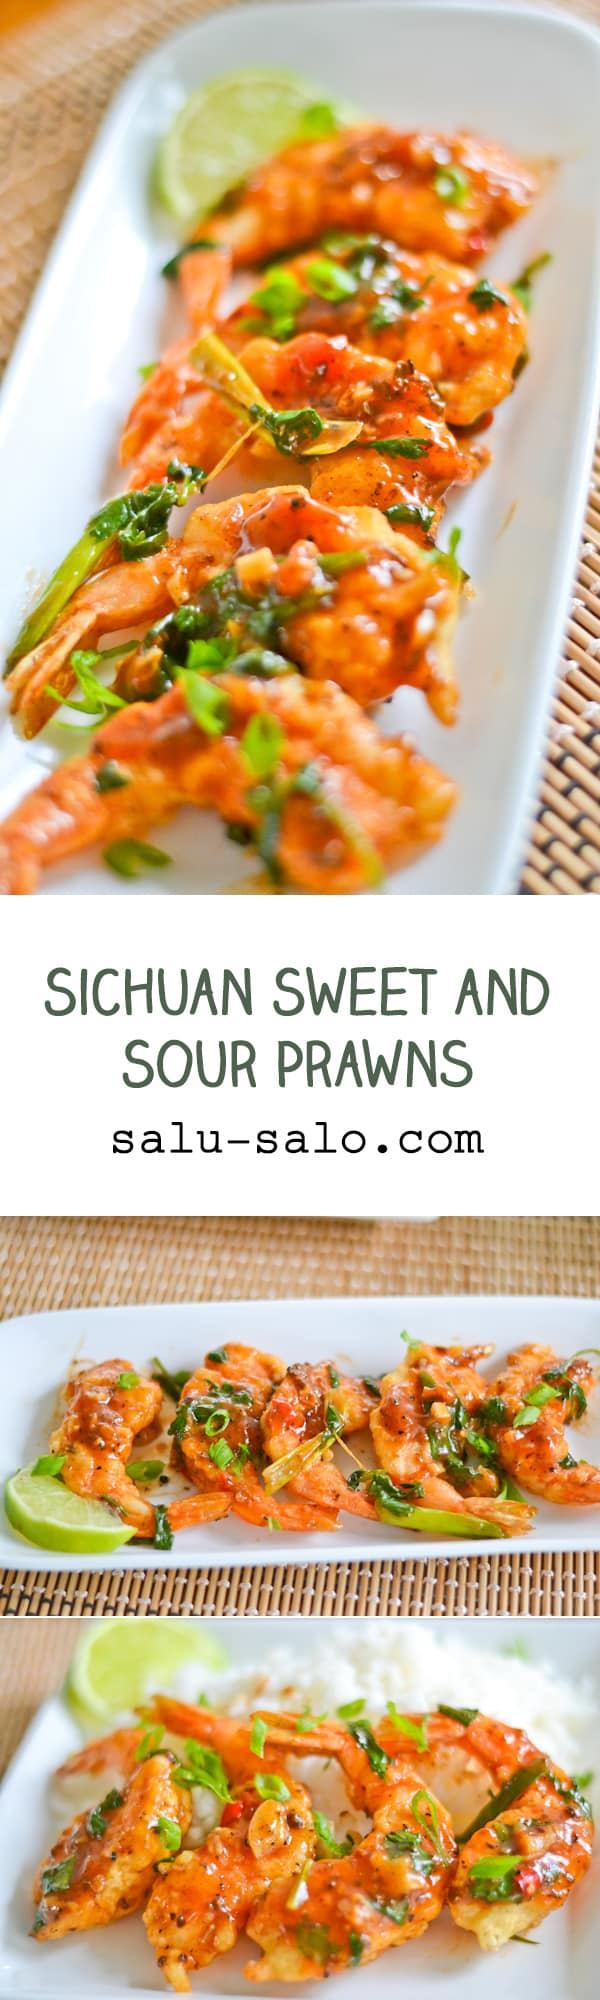 Sichuan-Sweet-and-Sour-Prawns